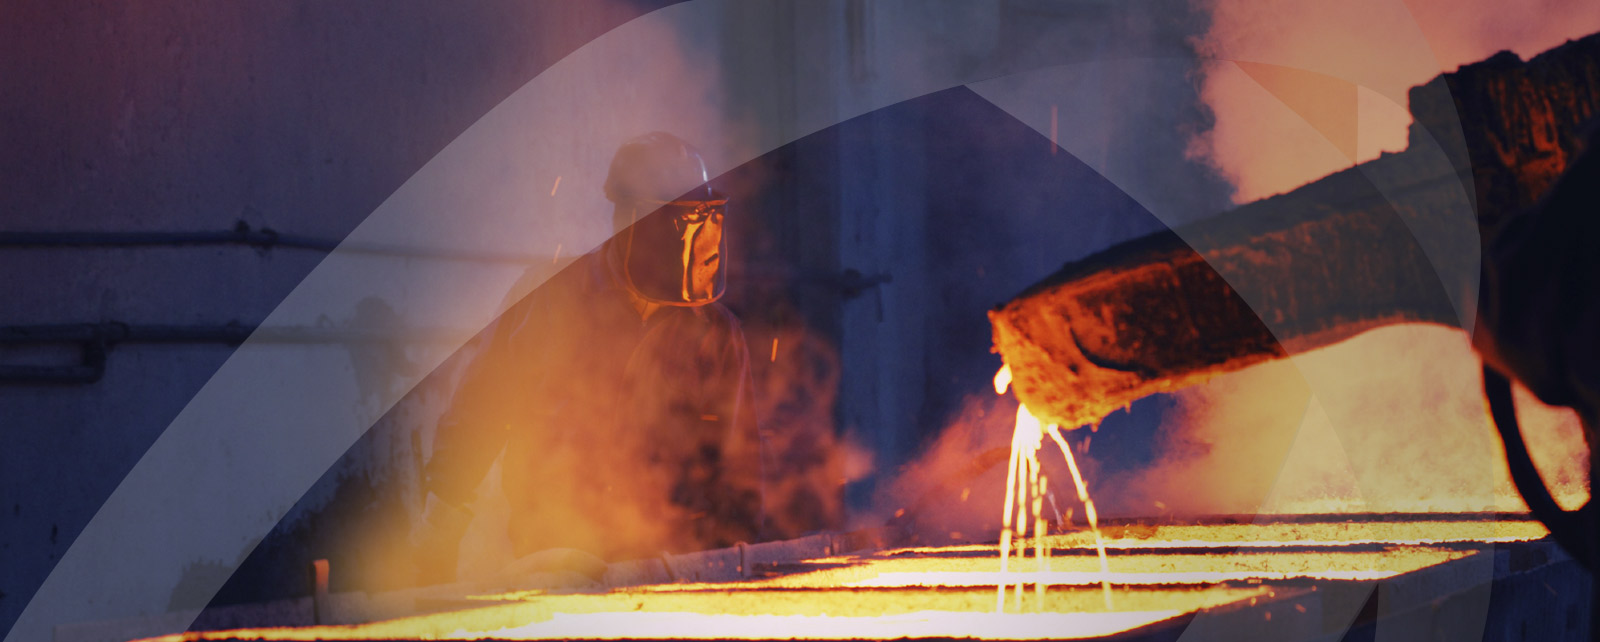 Danex resources | African commodities | Commodity business